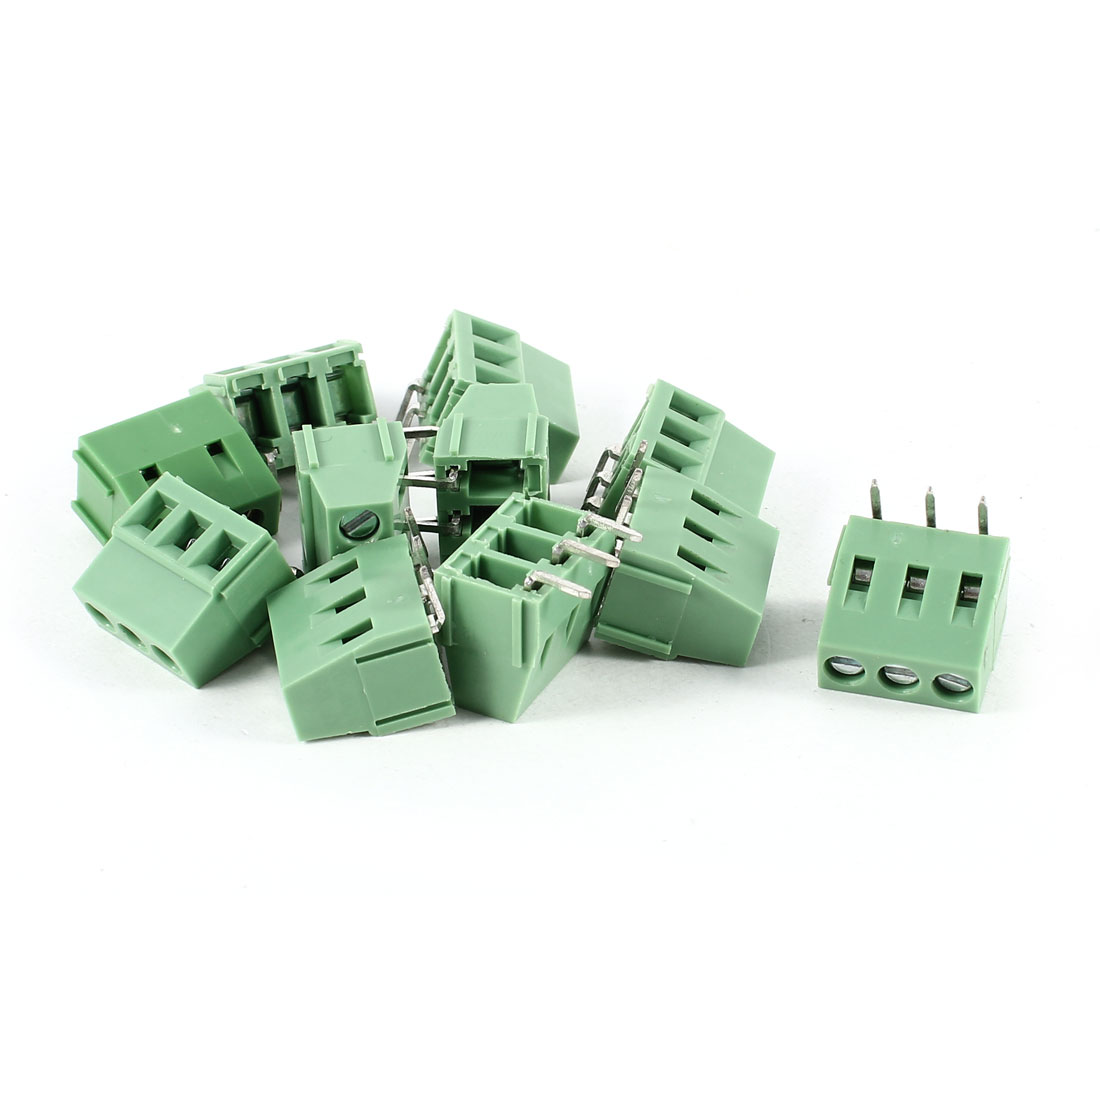 10 Pcs Green 3P 3Pins Right Angle 5mm PCB Wire Plug-in Screw Terminal Block Connectors 300V 10A KF128R